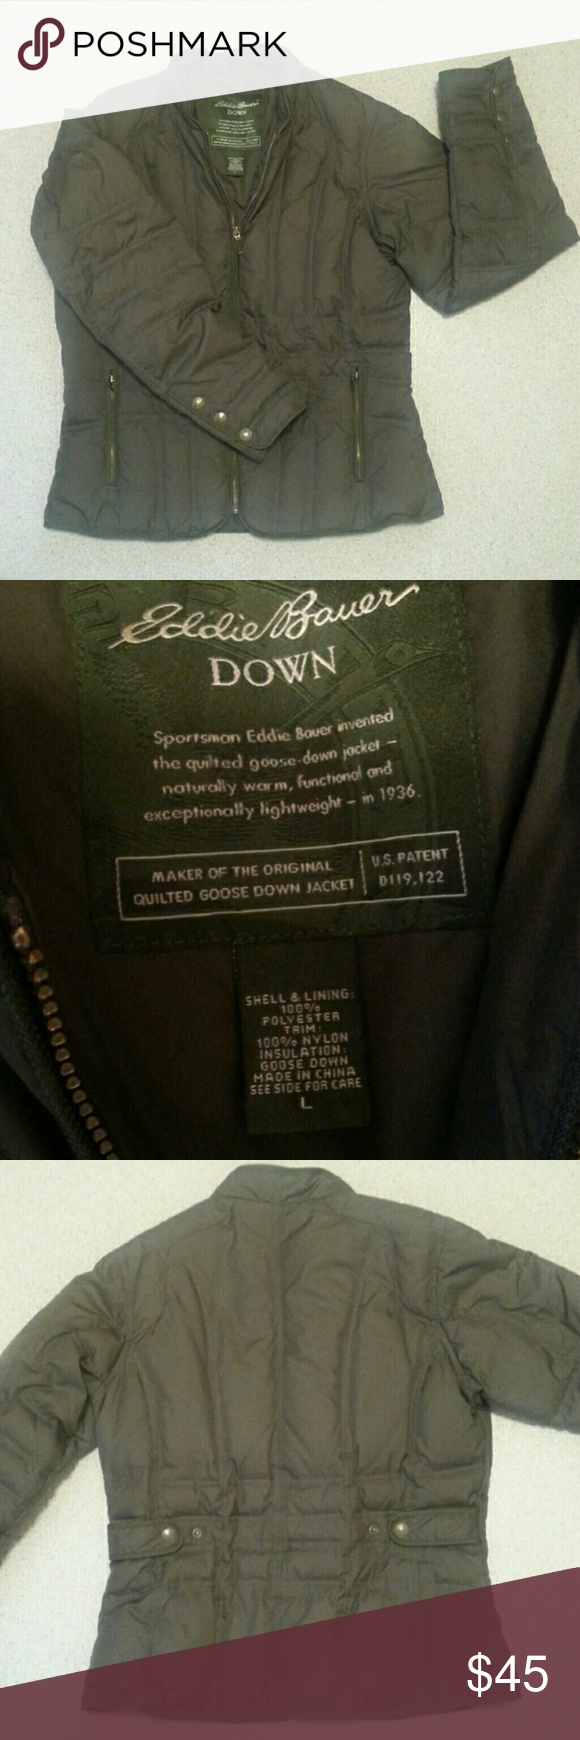 Eddie Bauer Quilted Goose Down Jacket Sportsman Eddie bauer invented the quilted goose-down jacket-naturally warm, functional and exceptionally lightweight-in 1936 This jacket is more on the medium size. Excellent shape! Jackets & Coats Utility Jackets